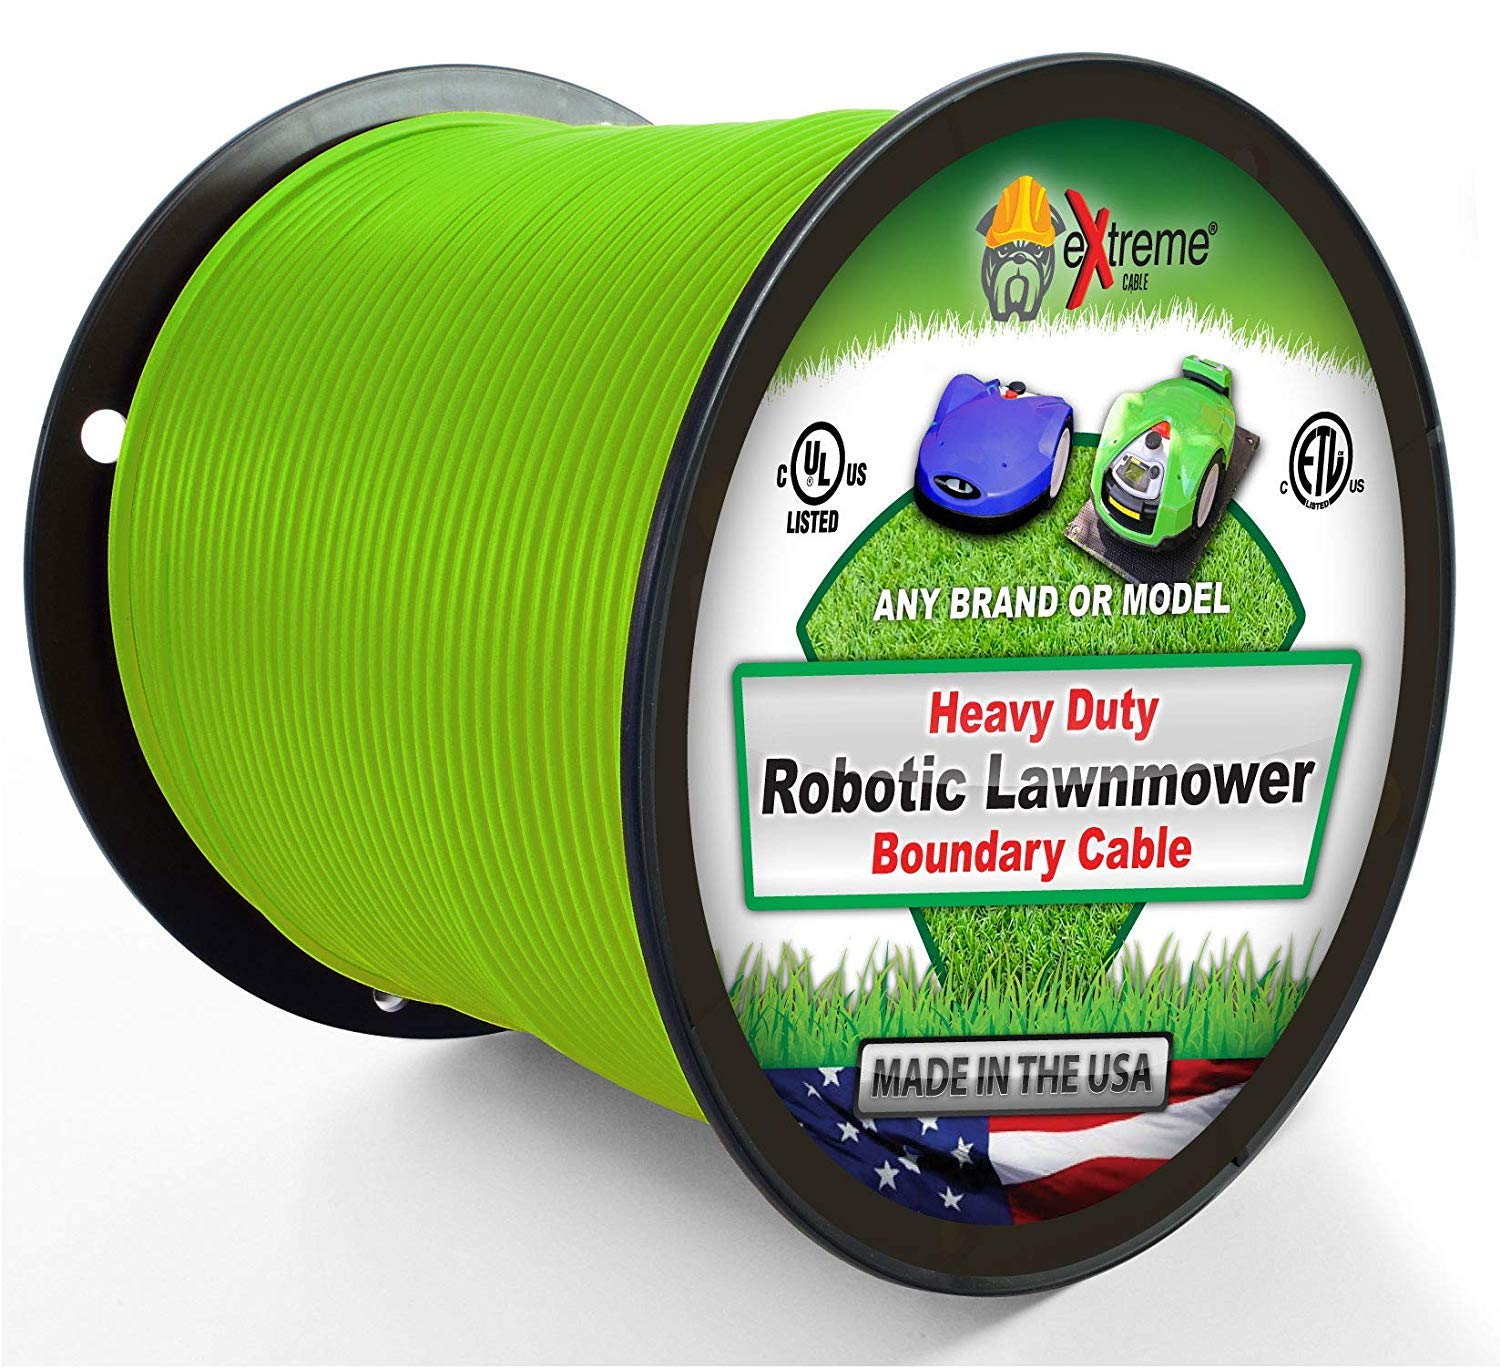 Extreme Consumer Products Universal Heavy Duty Automatic Lawnmower Boundary Wire - 500' 14 Gauge Thick Professional Grade Robotic Lawnmower Perimeter Wire Works with All Brands by Extreme Consumer Products